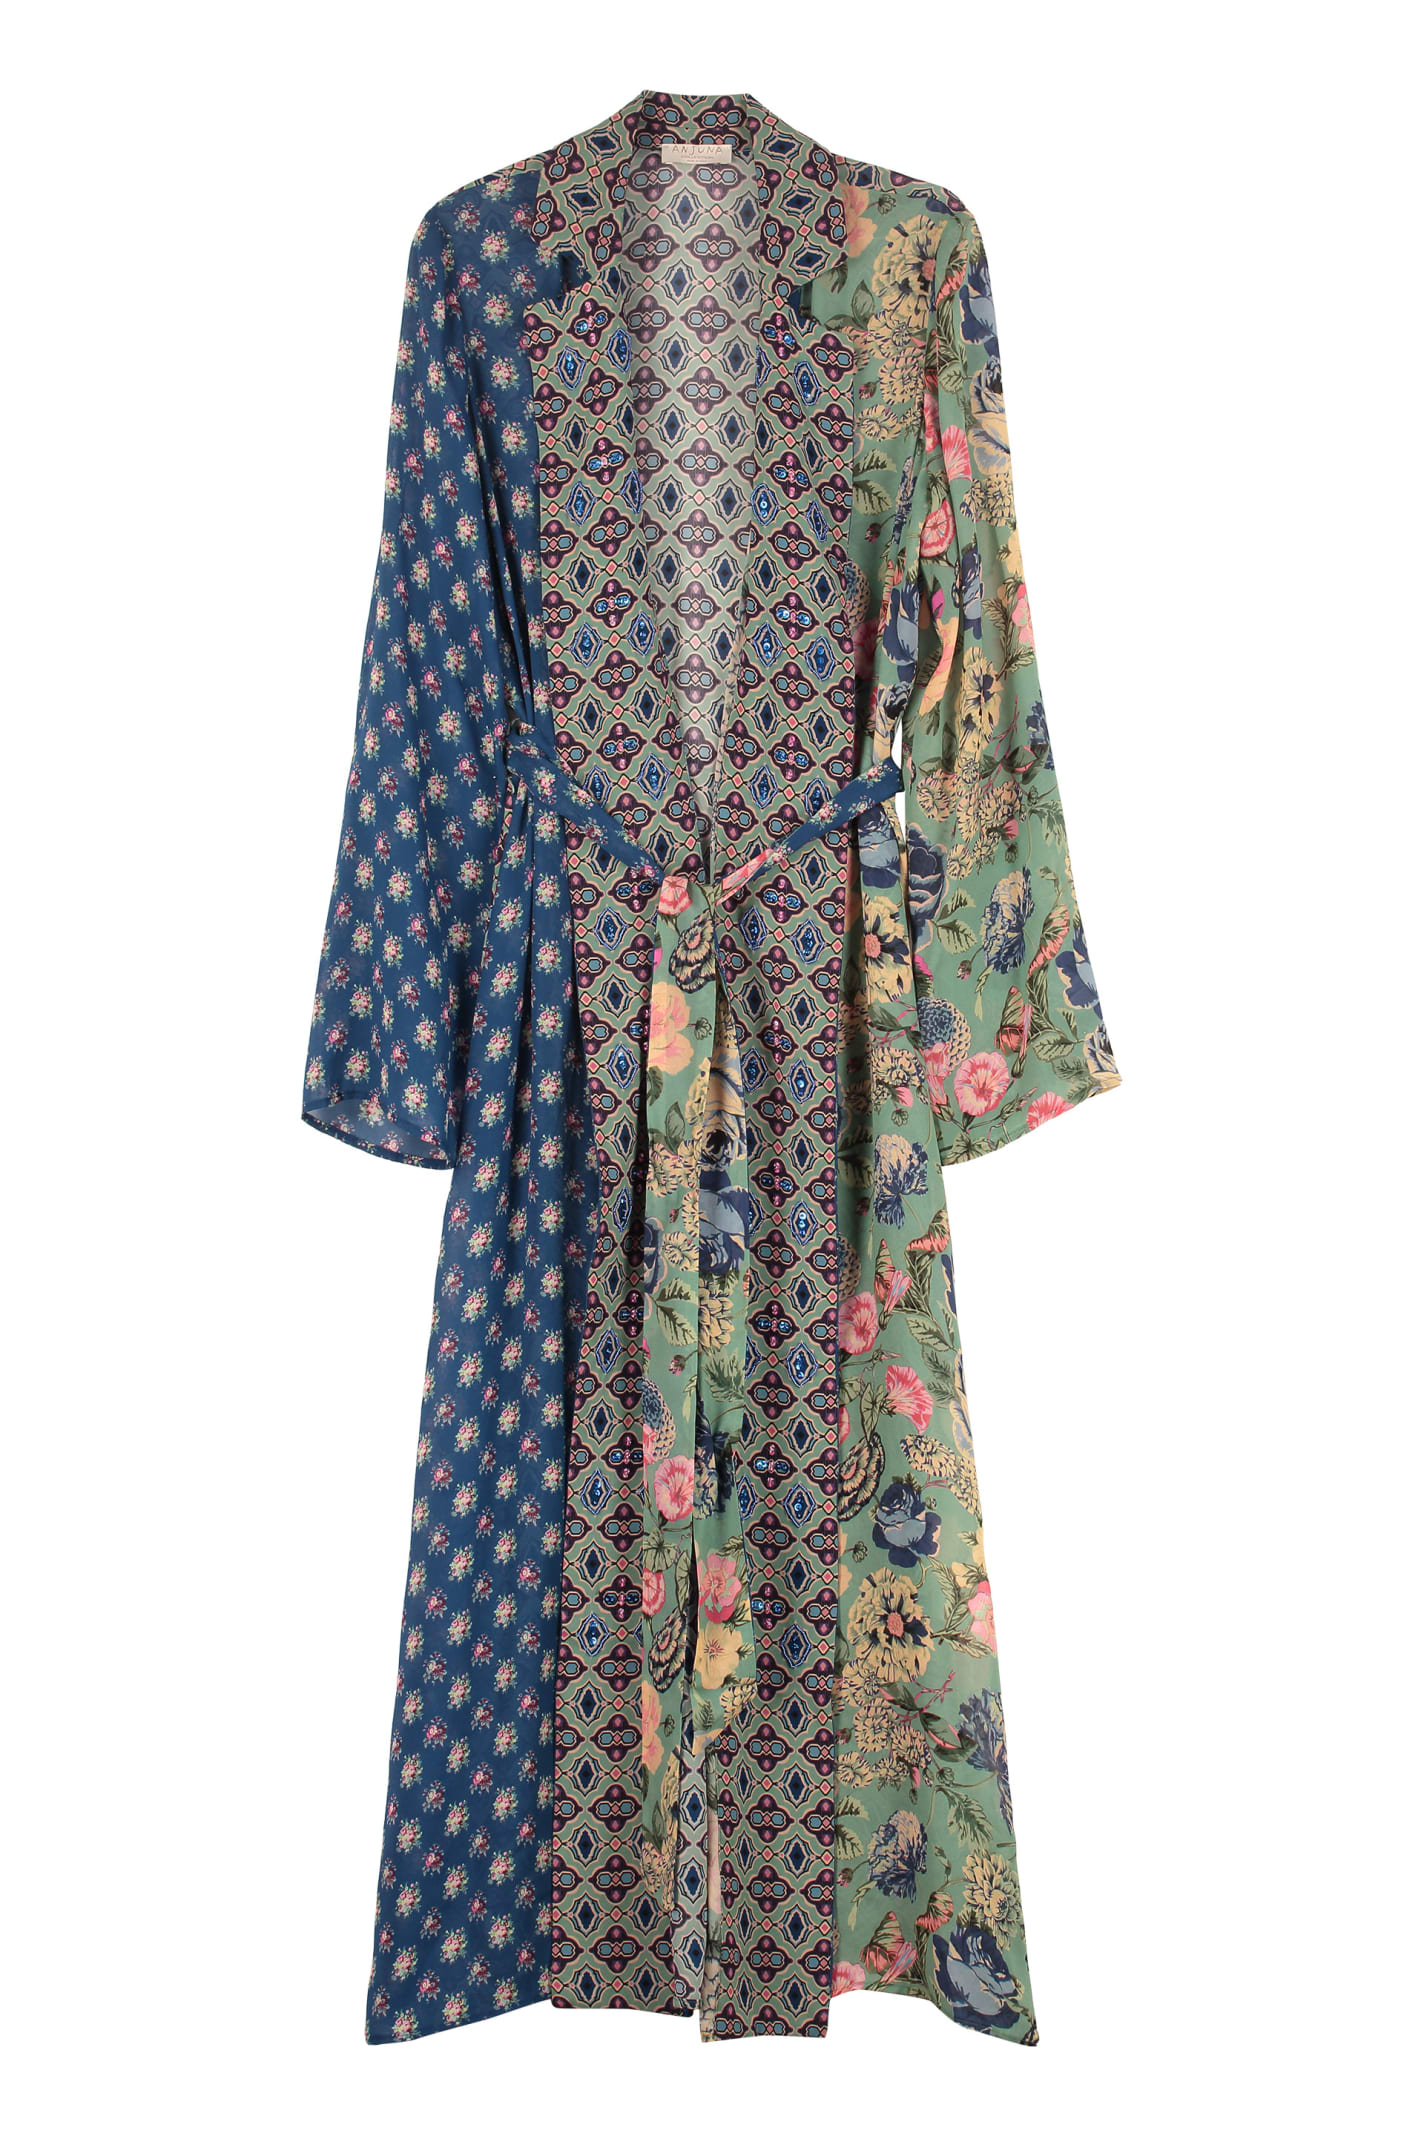 Buy Anjuna Selene Printed Maxi Dress online, shop Anjuna with free shipping